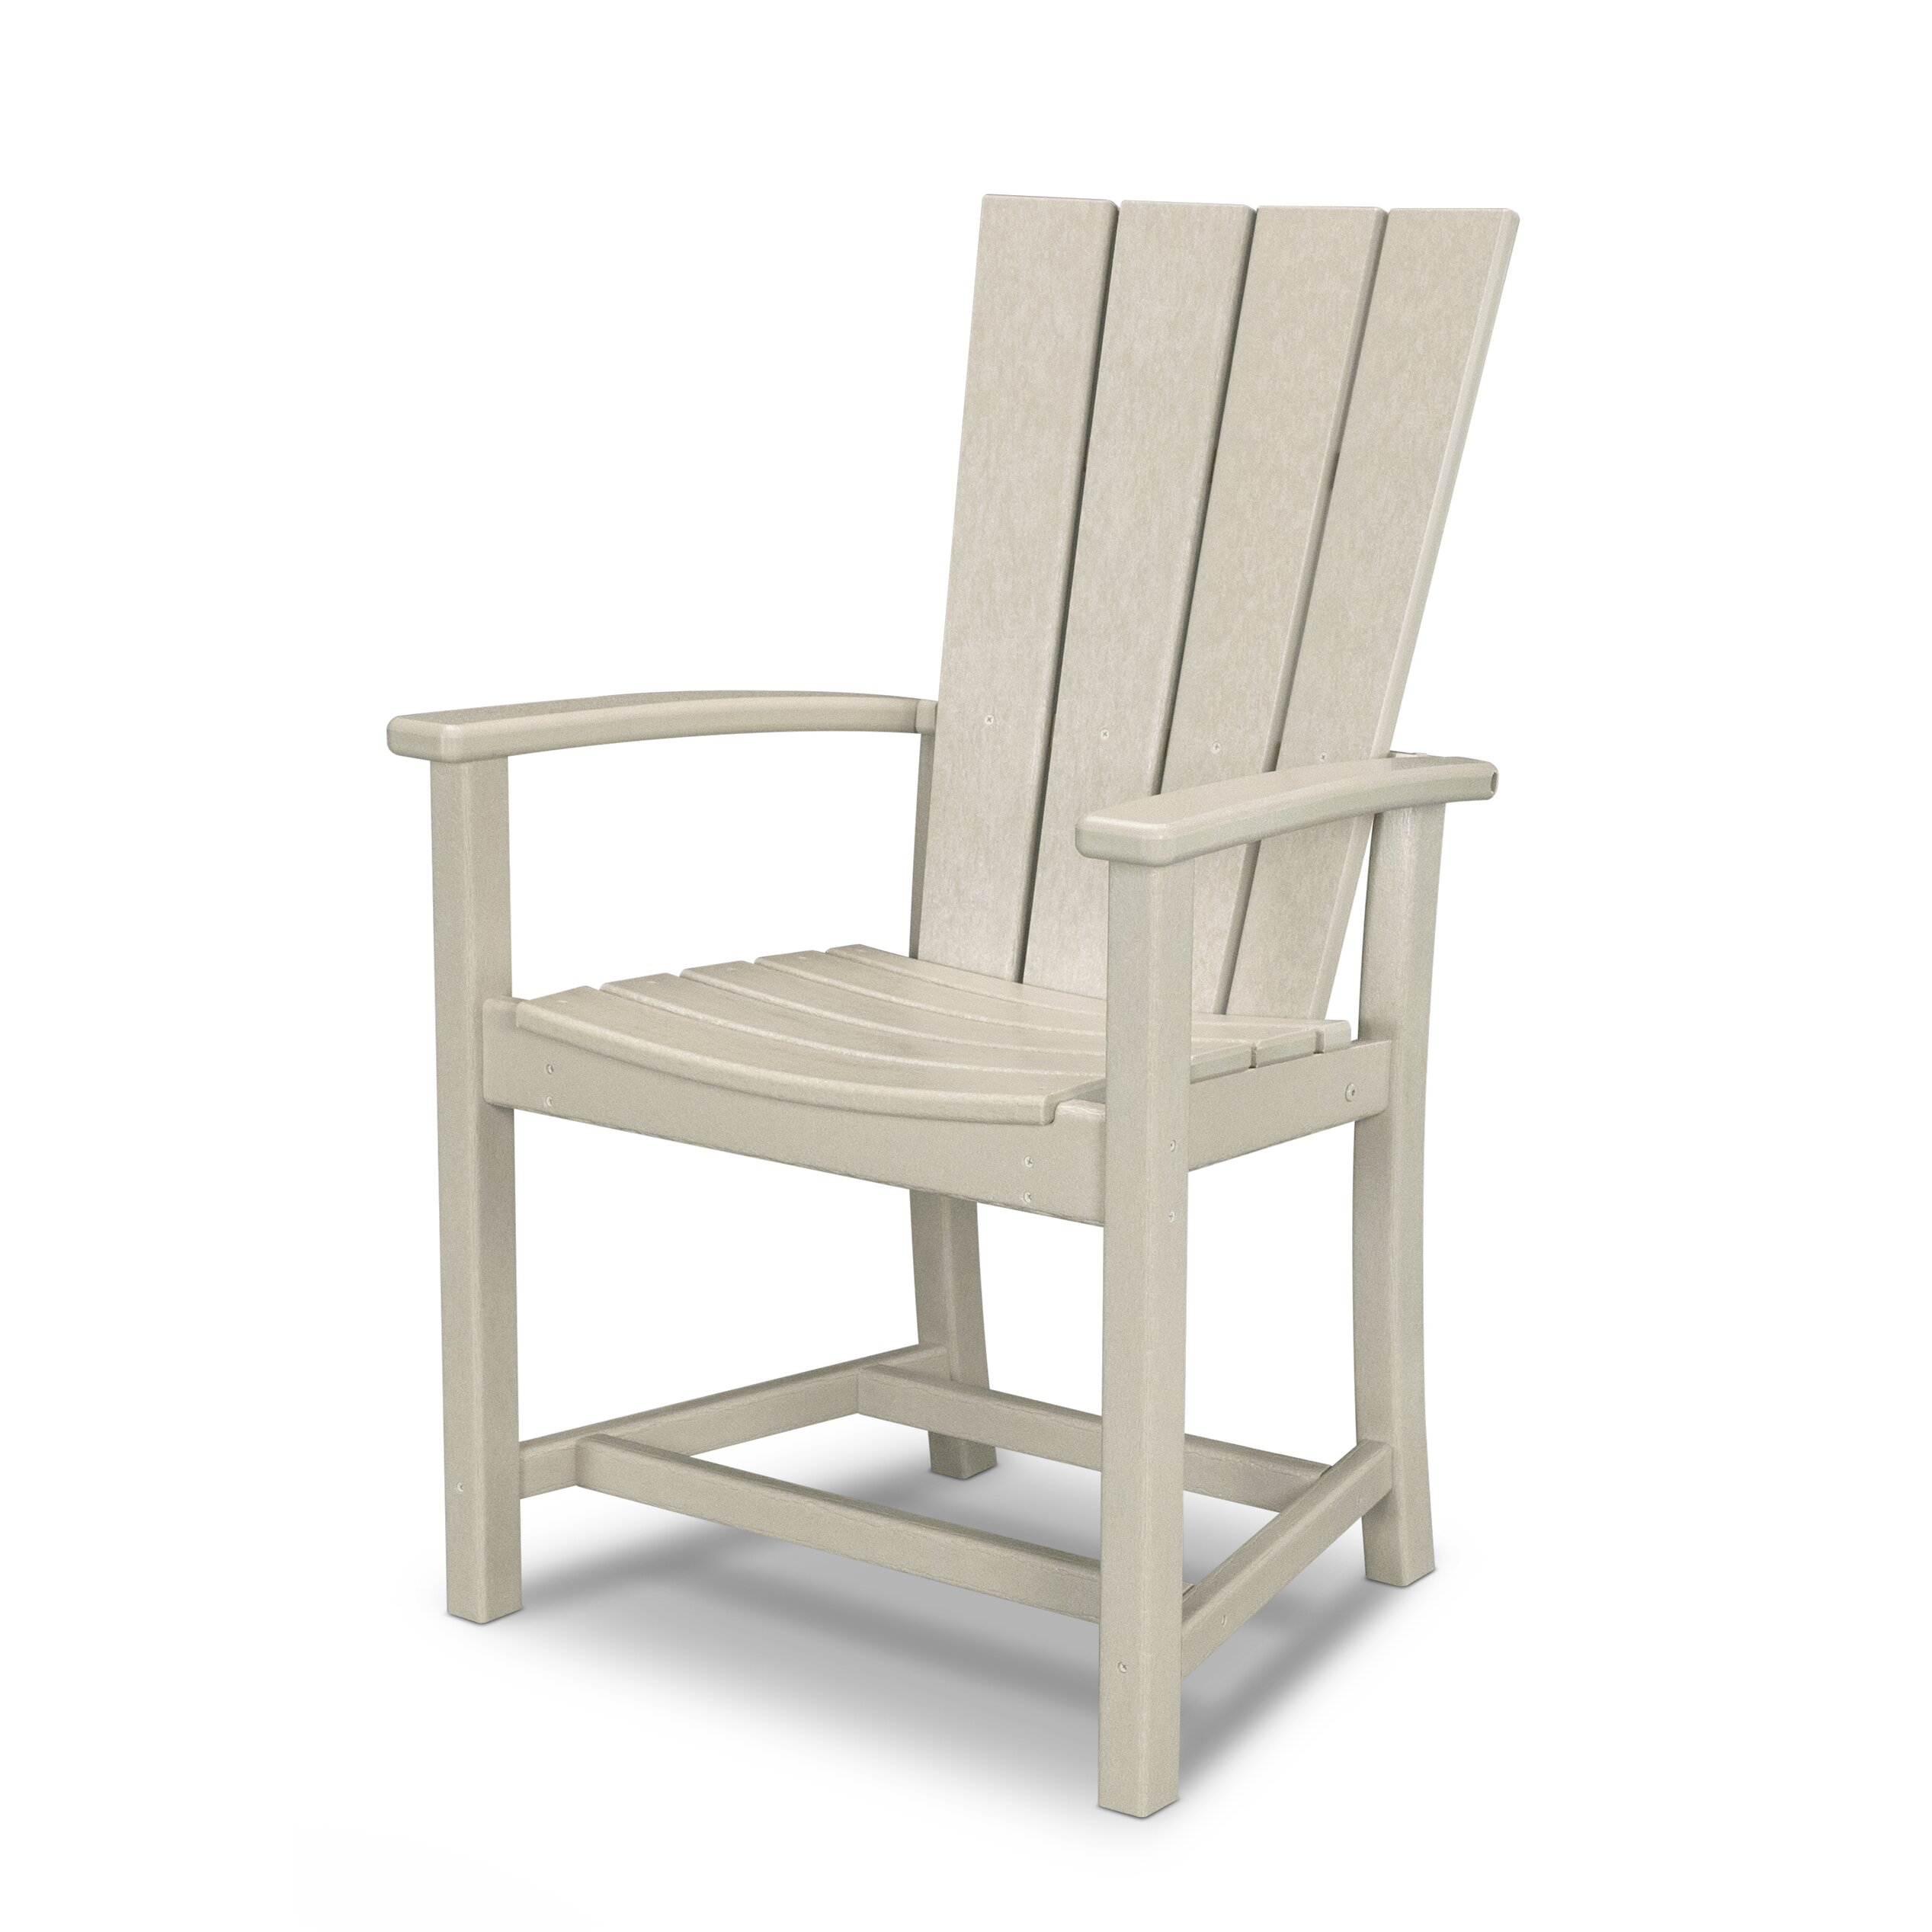 30 Best Of Outdoor Furniture Covers Queensland Patio  : Quattro Adirondack Dining Chair QLD200 from myard.co size 2535 x 2535 jpeg 315kB